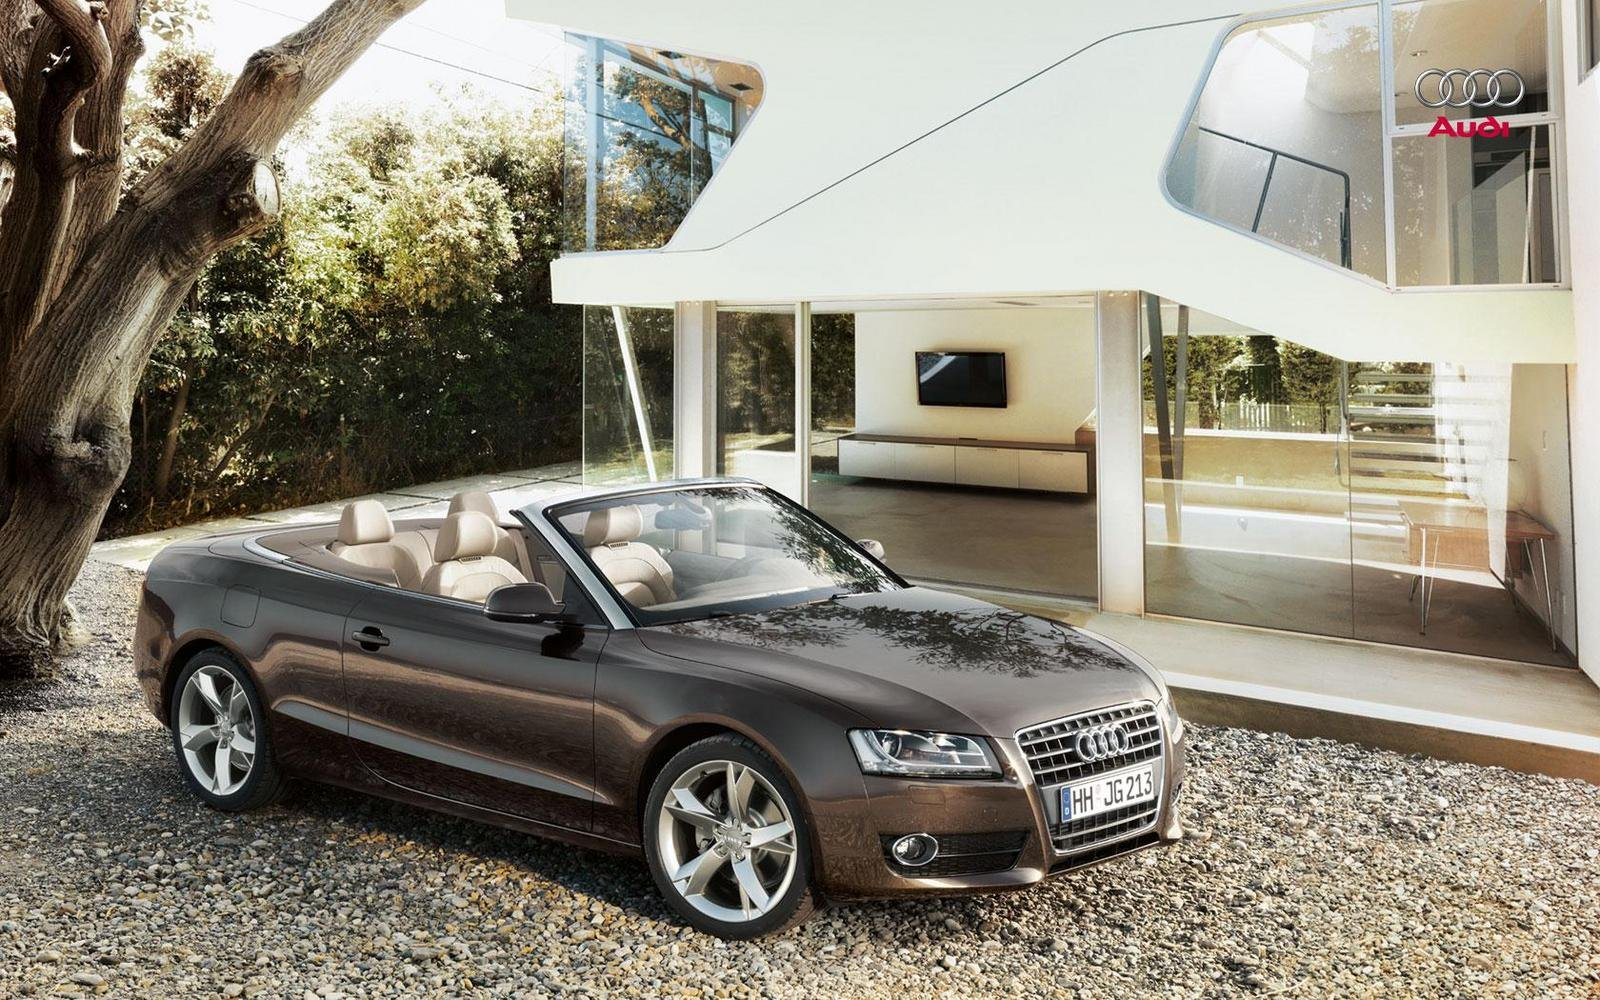 2009 audi a5 s5 convertible picture 276442 car review. Black Bedroom Furniture Sets. Home Design Ideas